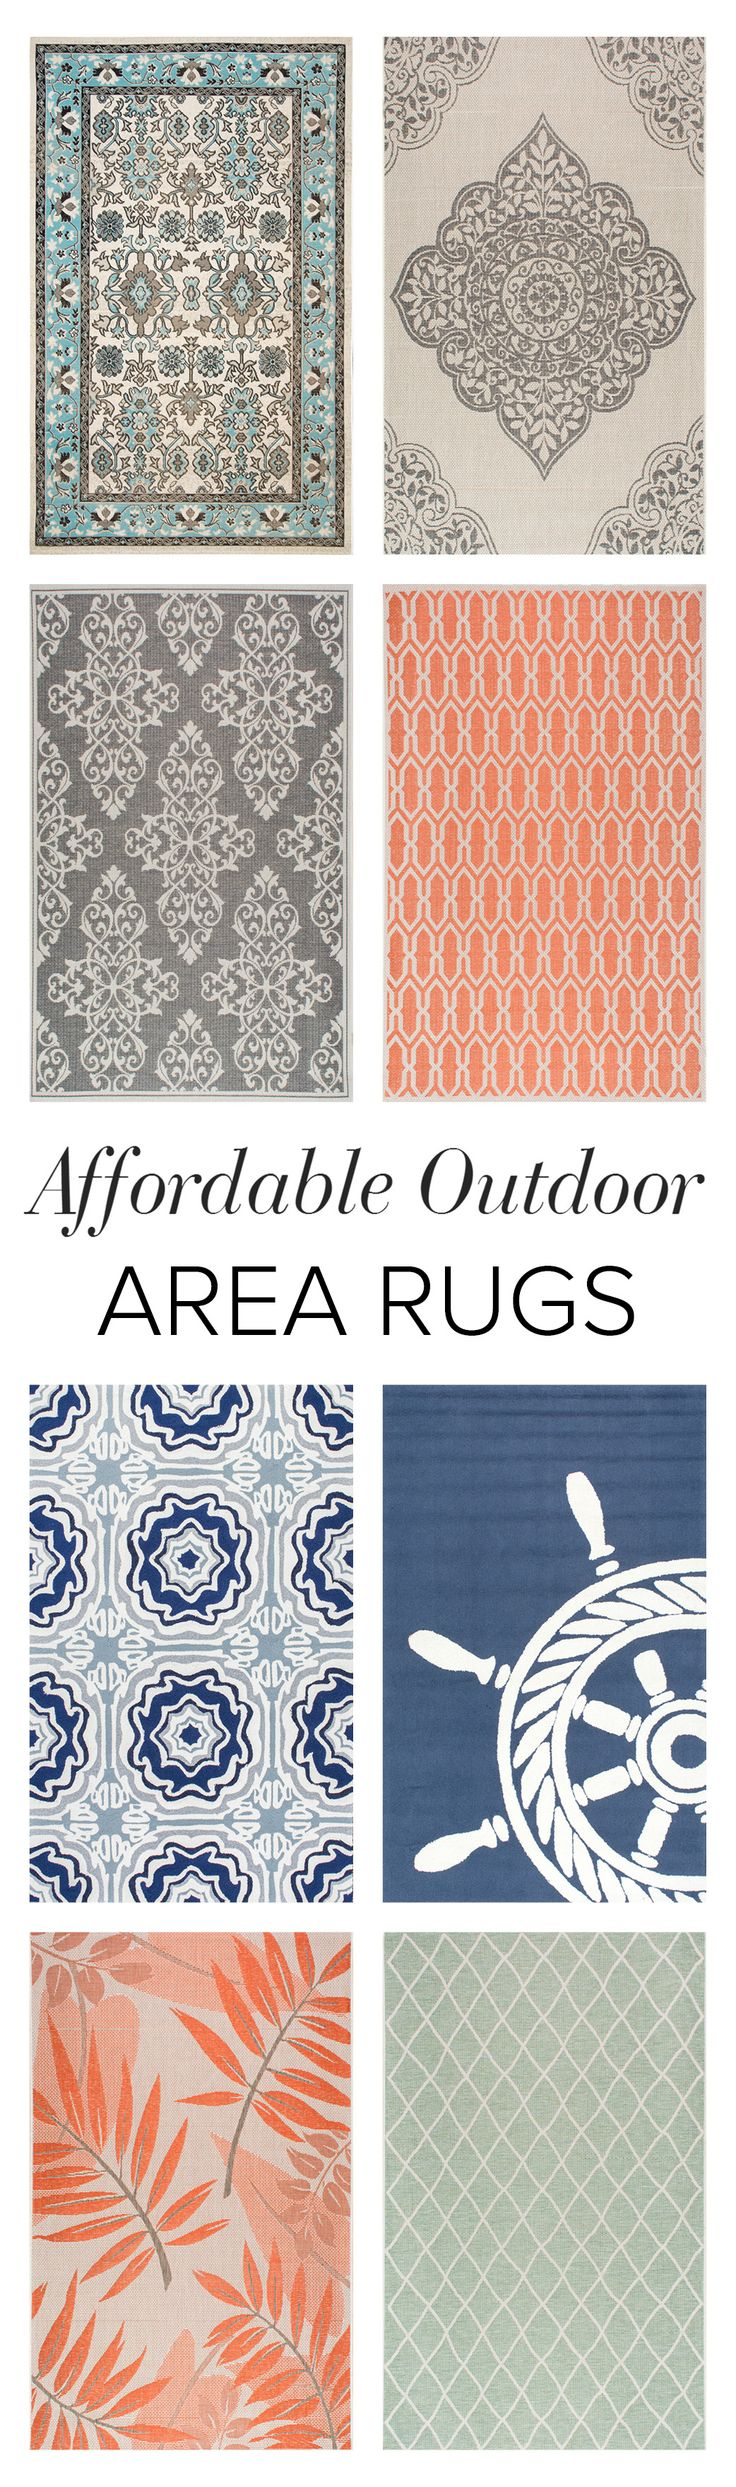 Decorate your patio or backyard with an outdoor rug! Shop on Rugs USA to find variety, durability, and amazing savings of up to 80% off!